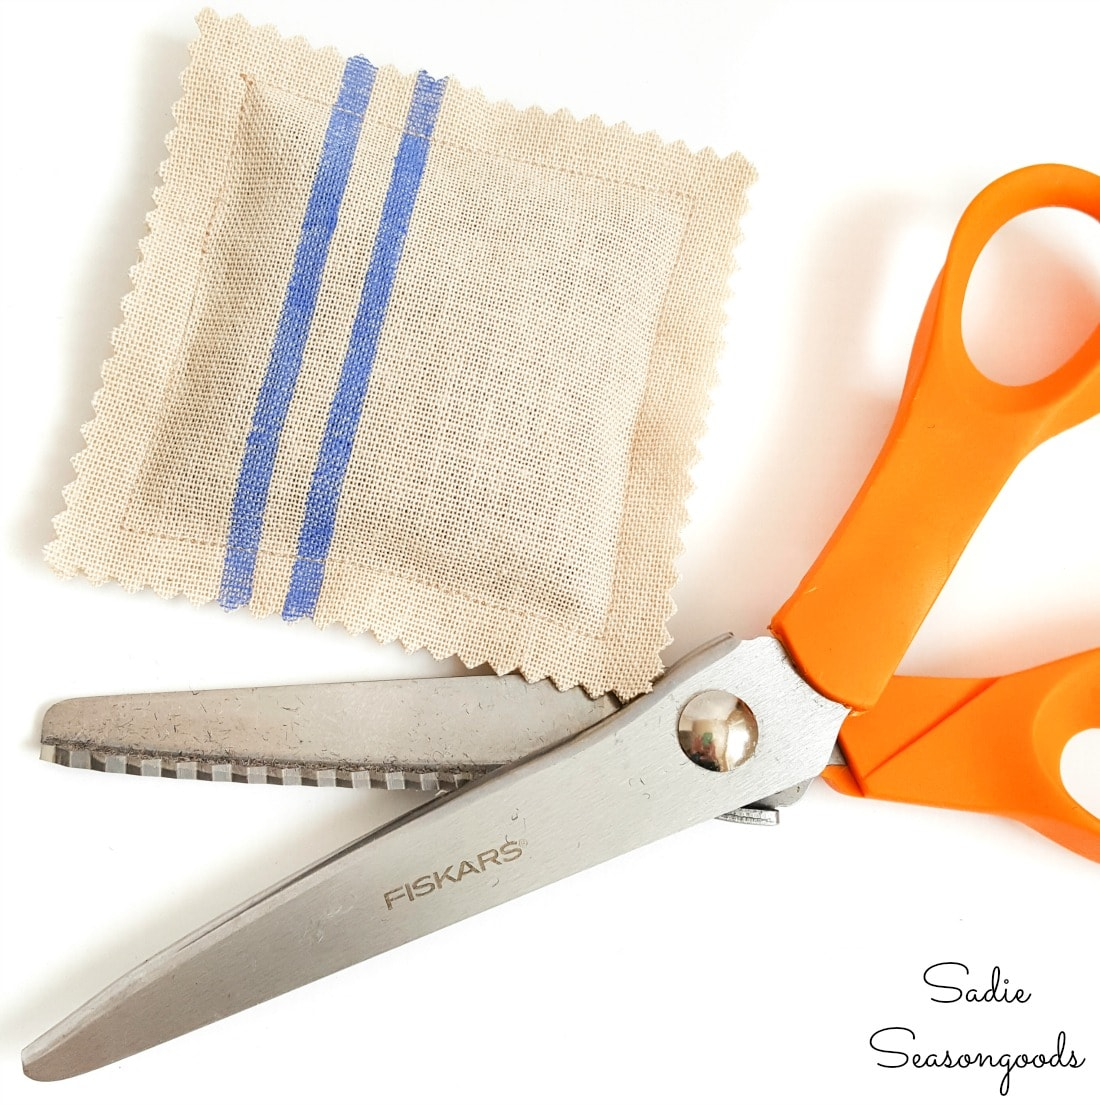 Pinking shears on the edges of DIY lavender sachets